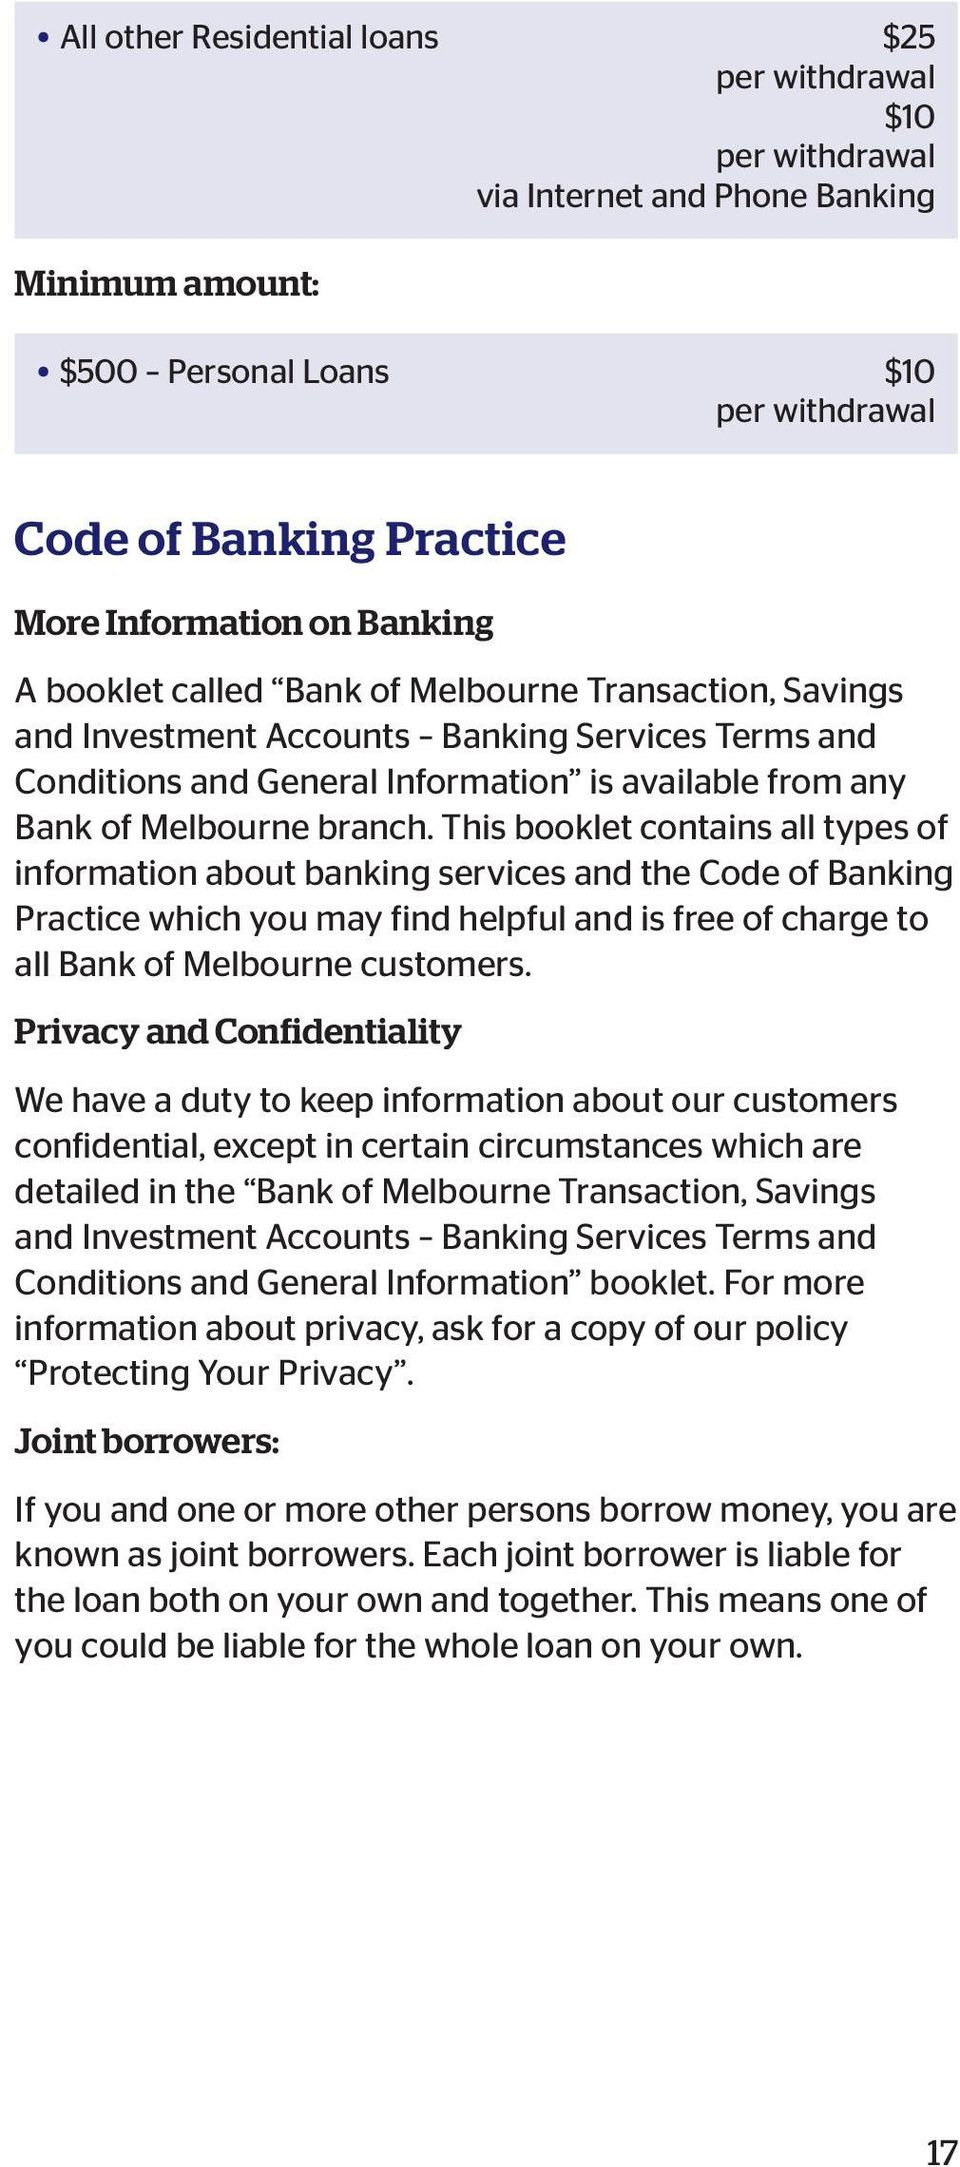 This booklet contains all types of information about bank ing services and the Code of Banking Practice which you may find helpful and is free of charge to all Bank of Melbourne customers.